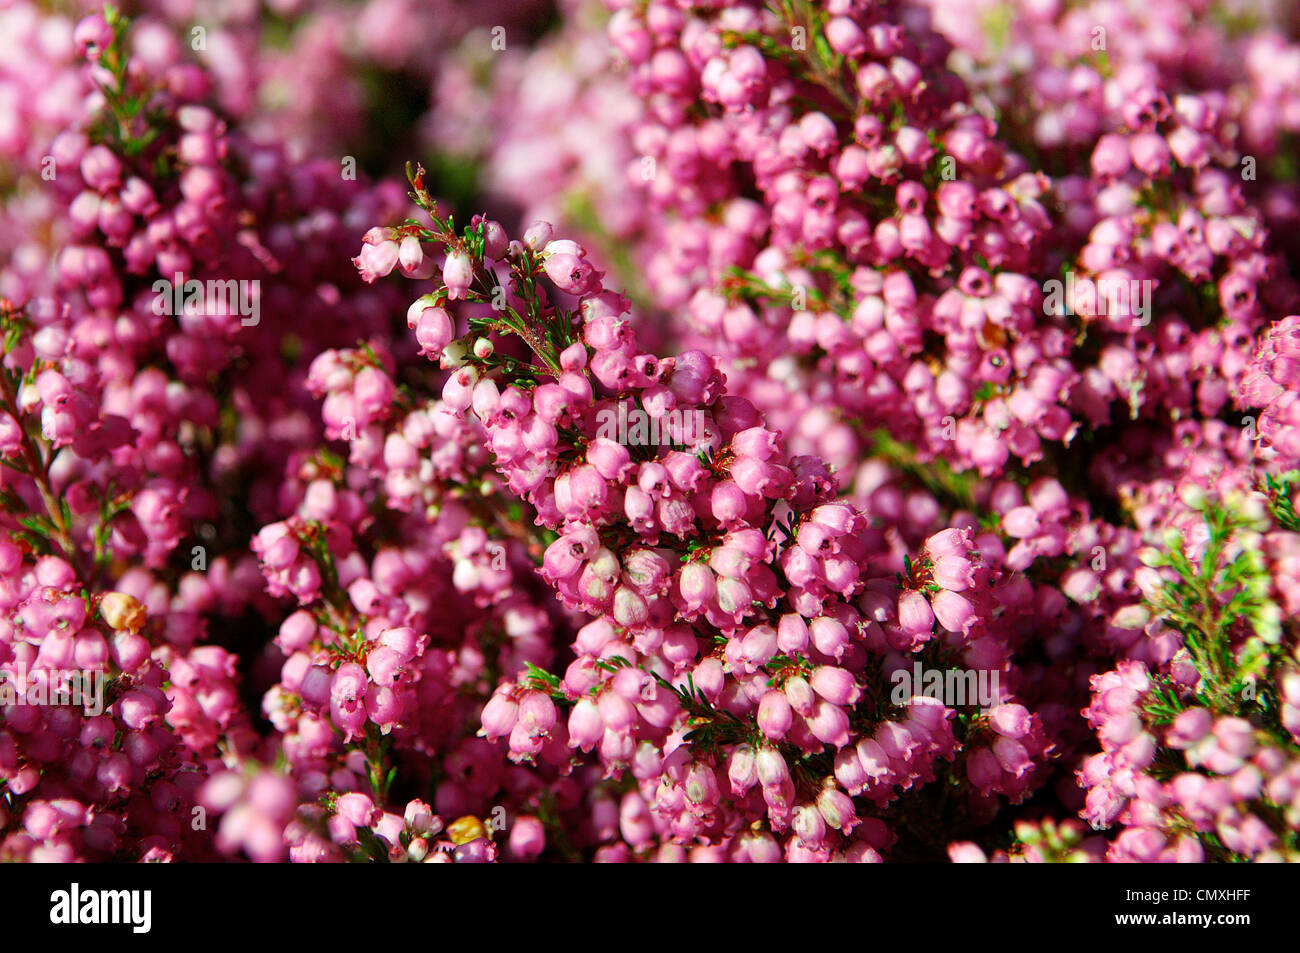 Detail of pink flowers at the market. - Stock Image